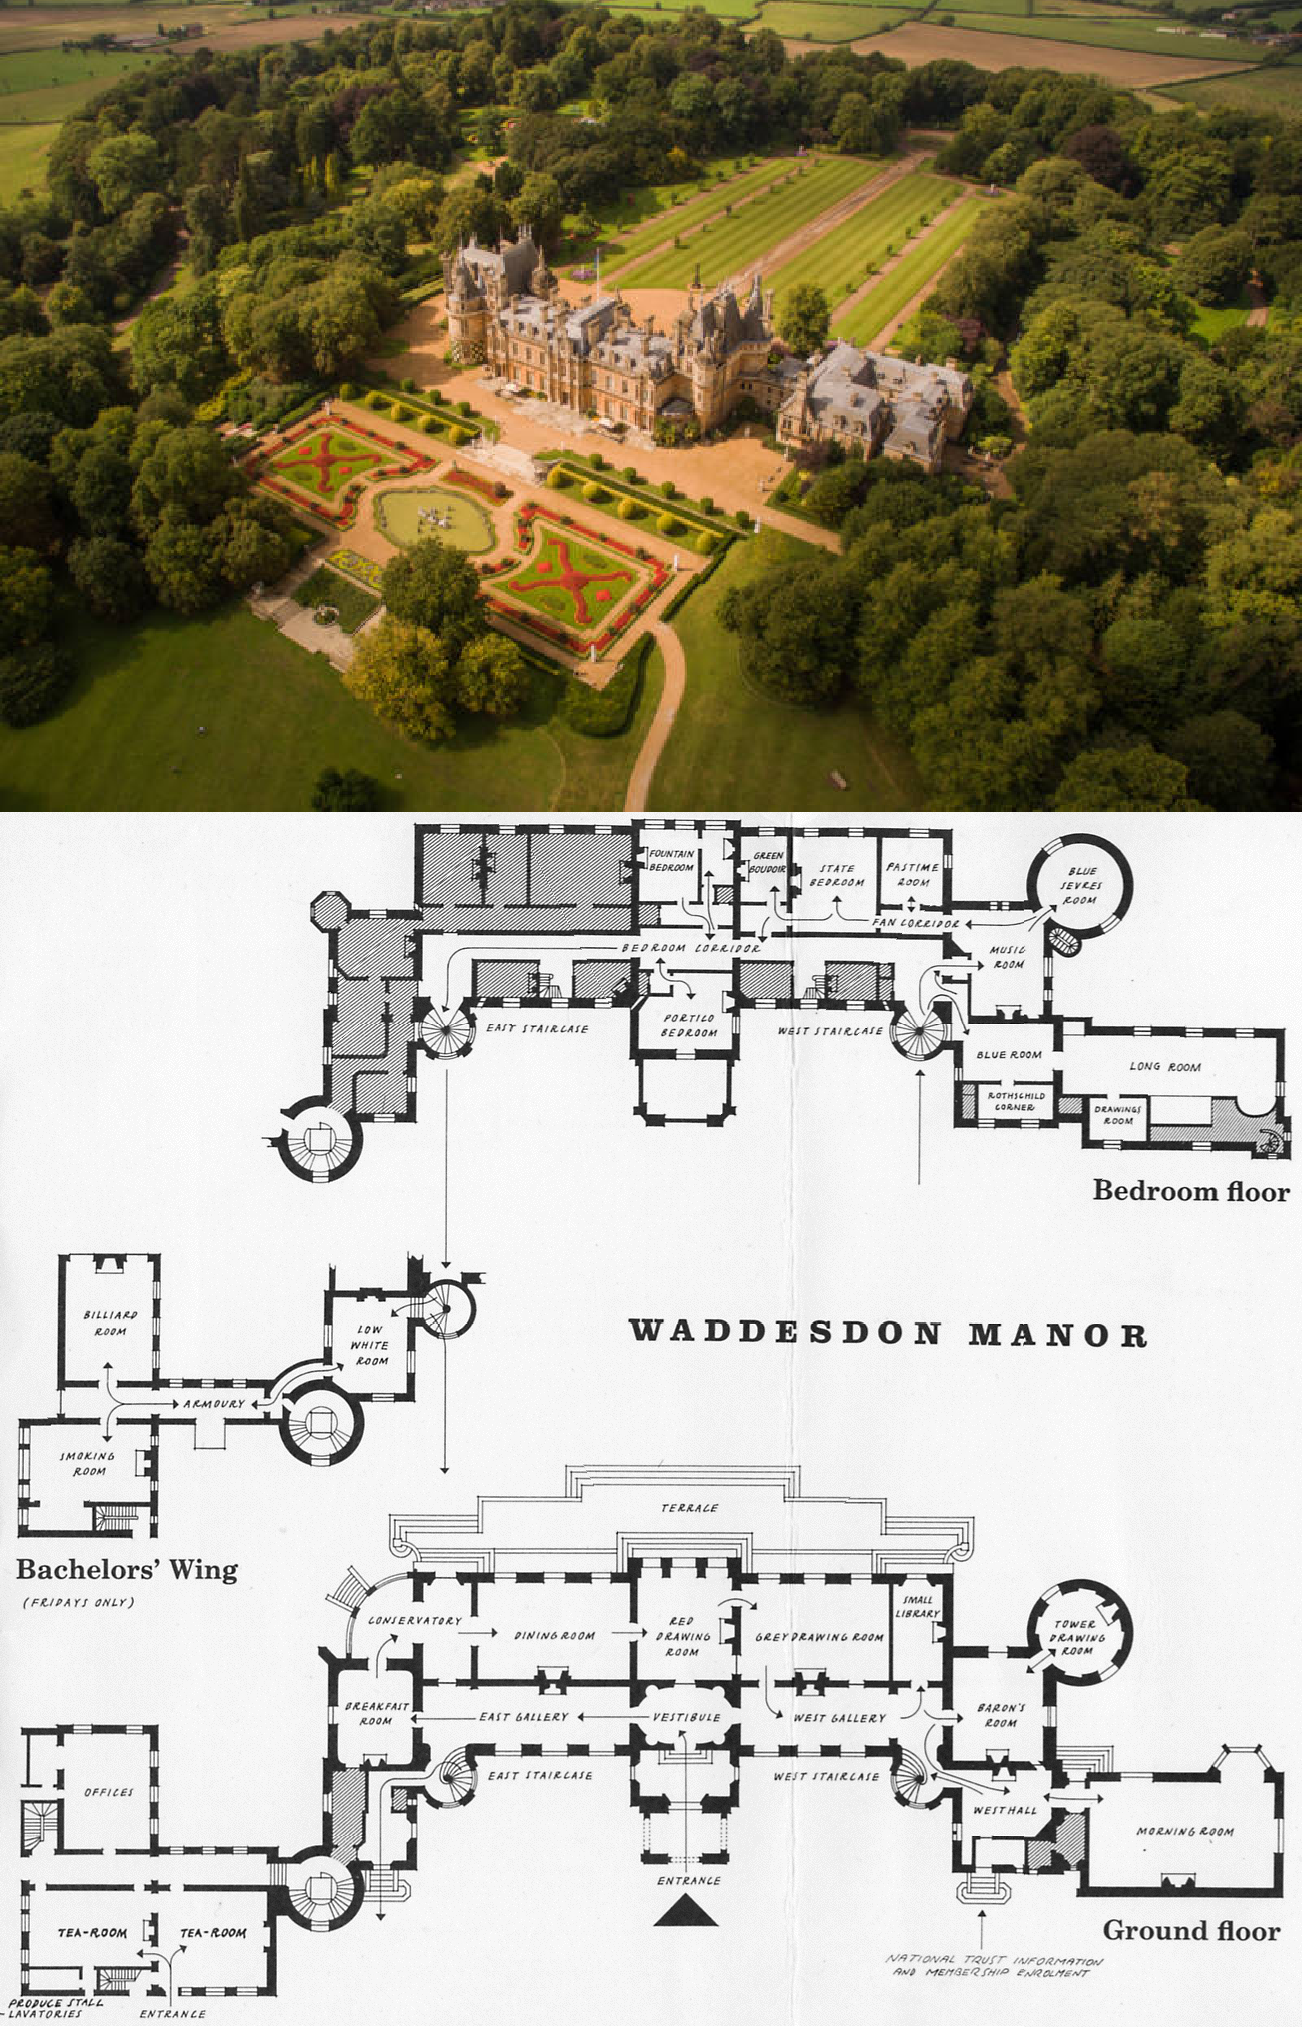 Waddesdon Manor, England | Houses plans | Castle floor plan ... on artisan house plans, indies house plans, devon house plans, design source house plans, guam house plans, vampire house plans, celtic house plans, whitmore house plans, bearden house plans, summer camp house plans, southampton house plans, almas house plans, rome house plans, americas house plans, canterbury house plans, pacific northwest house plans, holloway house plans, switzerland house plans, norway house plans, egypt house plans,